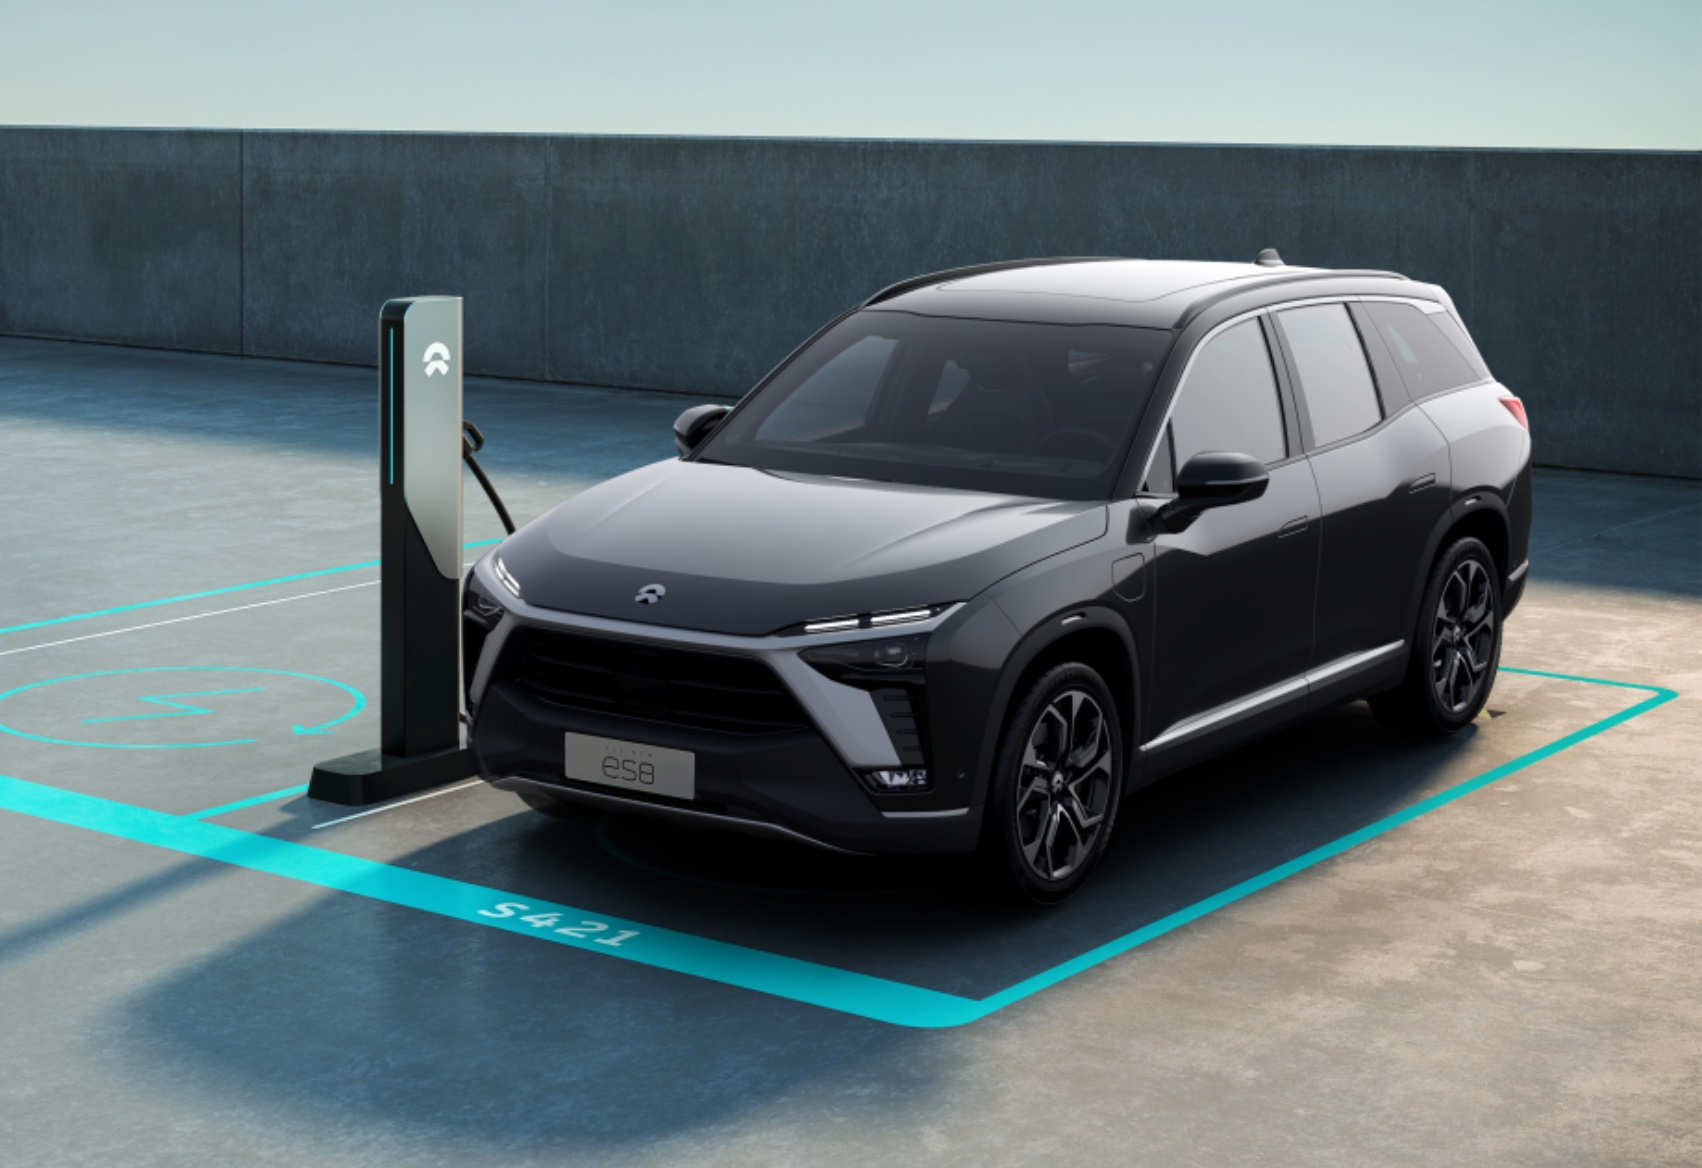 NIO sets up battery asset company, CATL has taken a stake-cnTechPost